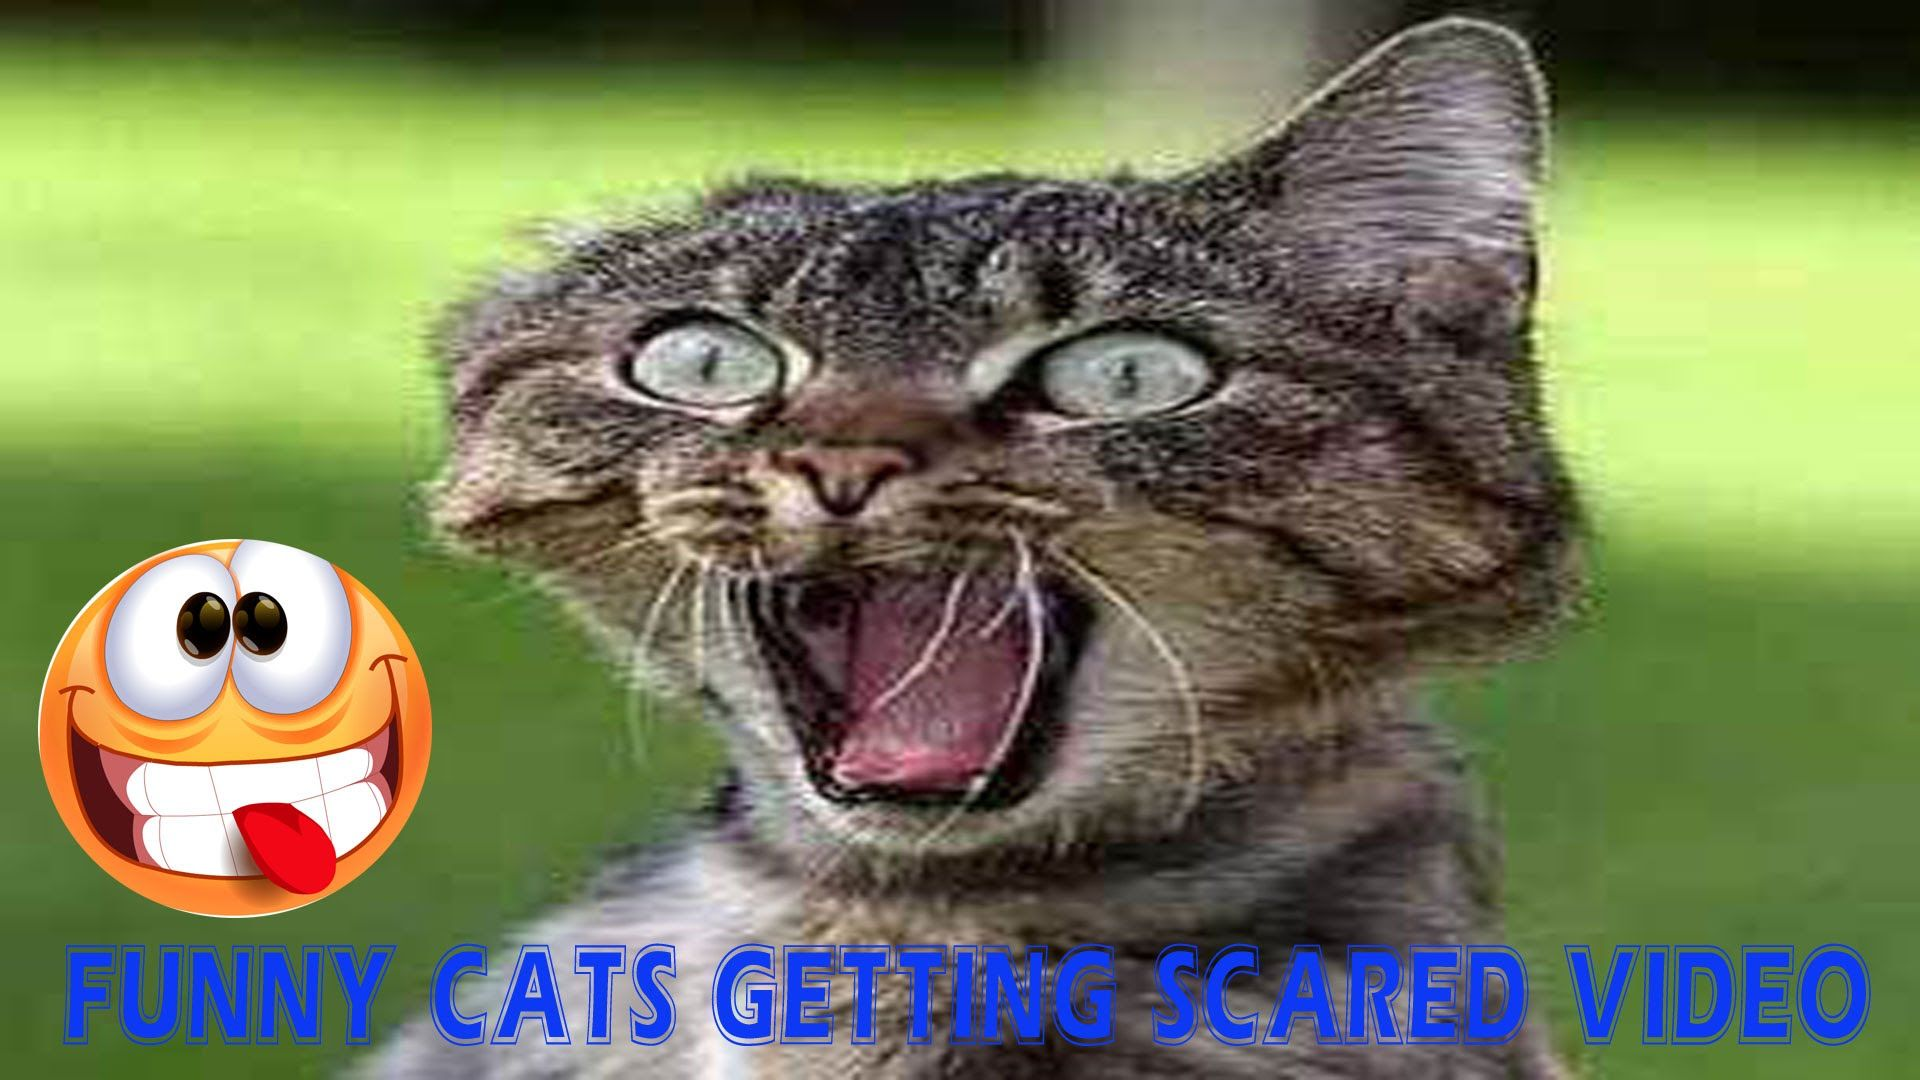 Funny Cats Getting Scared Videos (With images) Funny gif